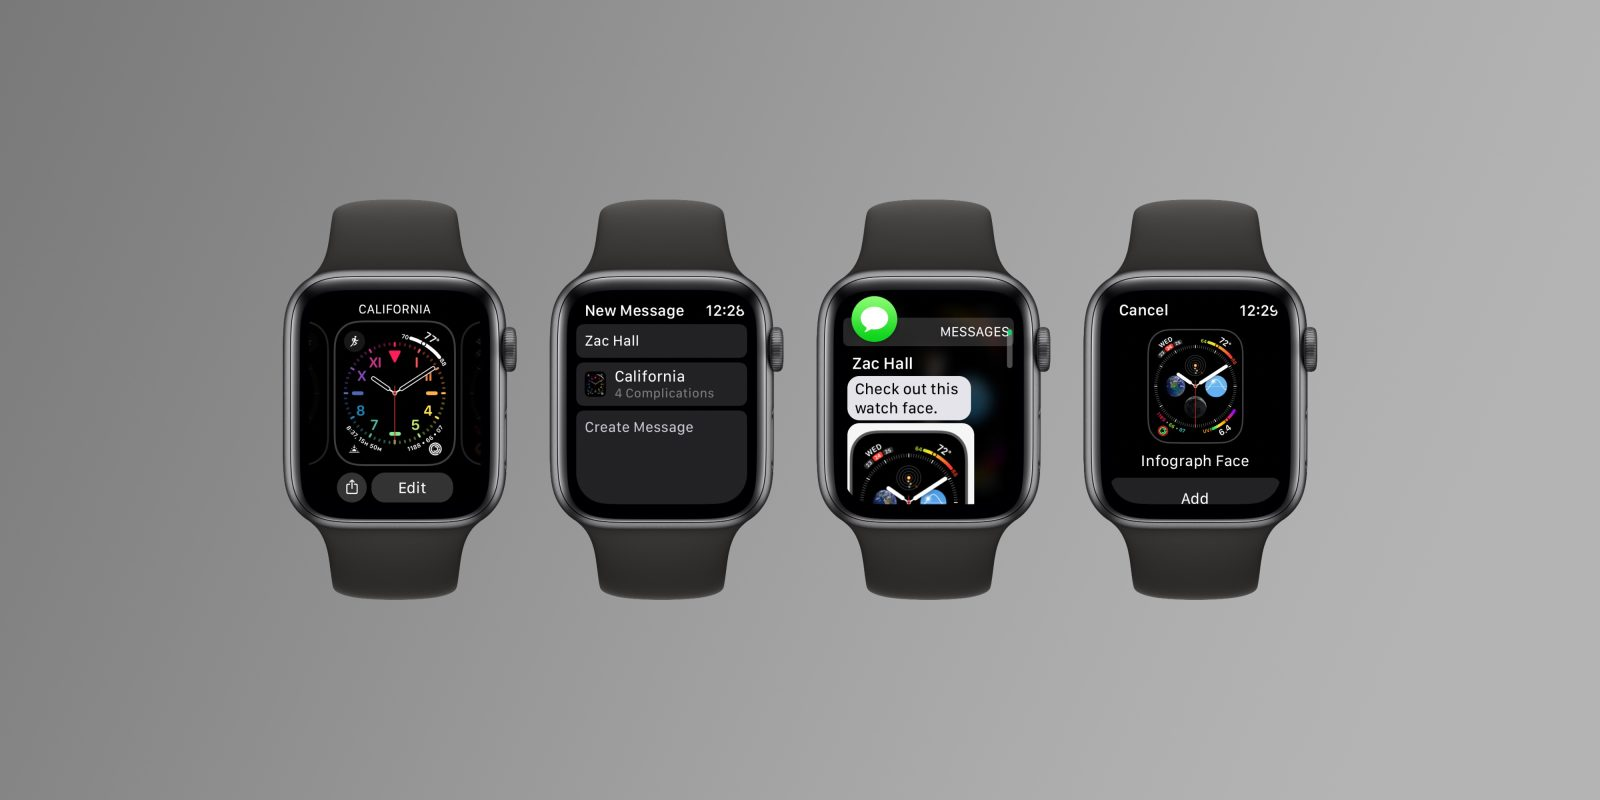 watchOS 7: Here's how sharing Apple Watch faces works - 9to5Mac